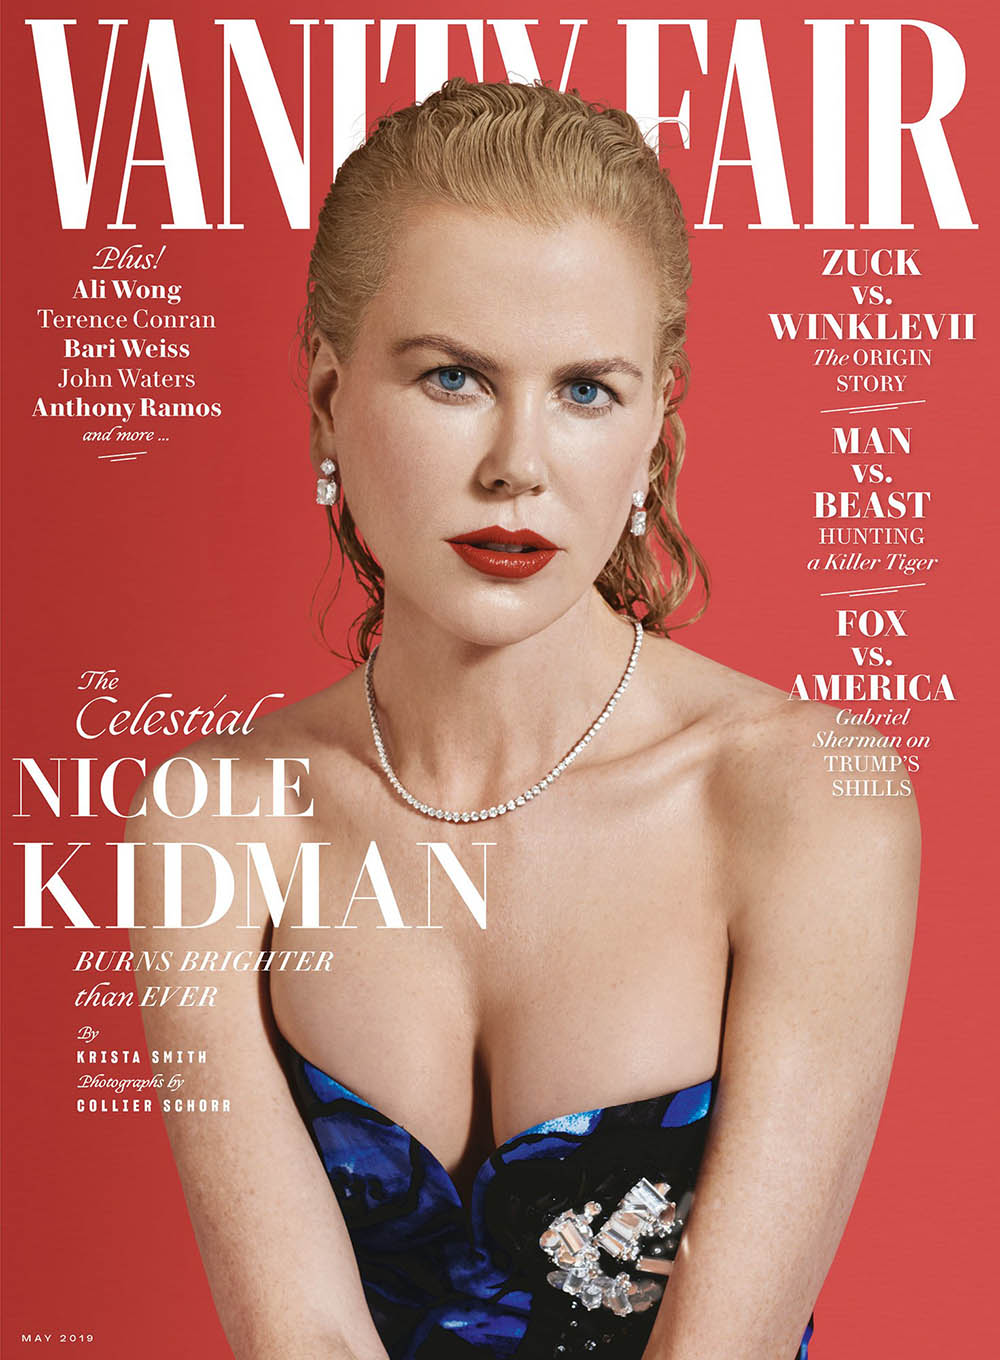 Nicole Kidman covers Vanity Fair May 2019 by Collier Schorr